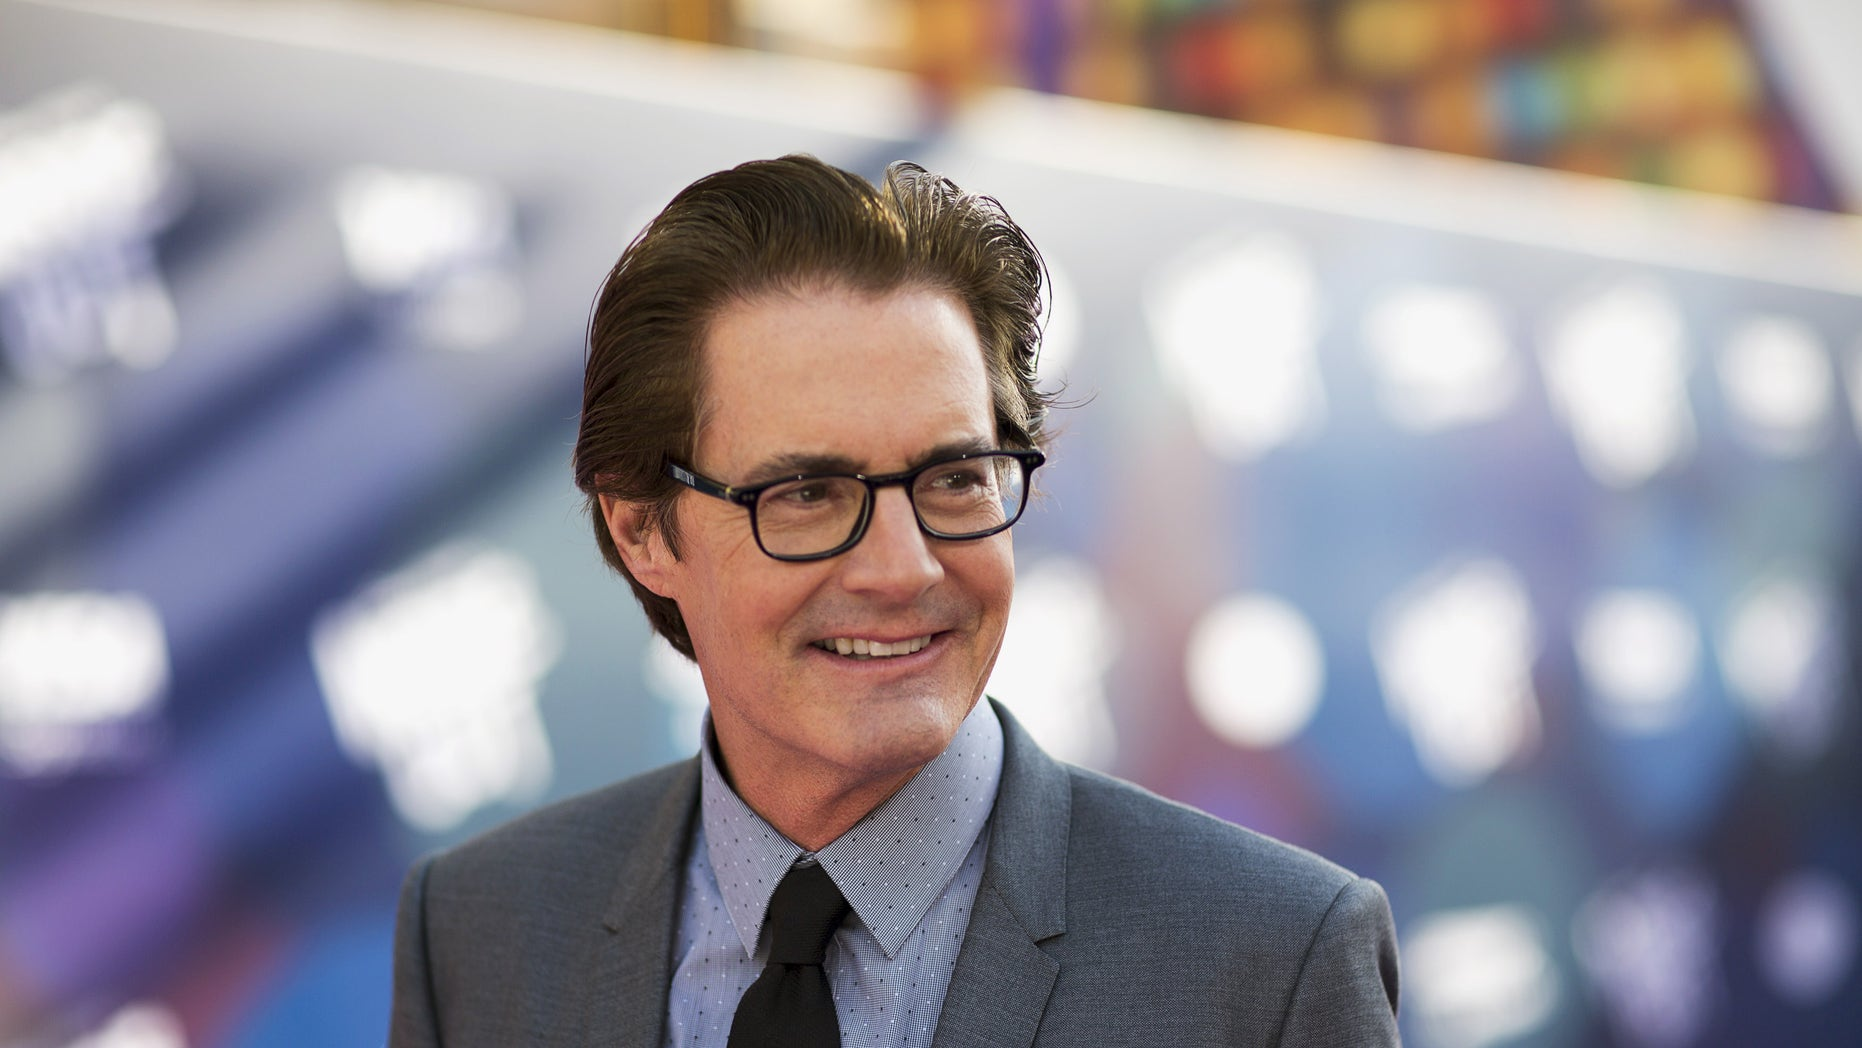 """Cast member Kyle MacLachlan poses at the premiere of """"Inside Out"""" at El Capitan theatre in Hollywood, California June 8, 2015. The movie opens in the U.S. on June 19.  REUTERS/Mario Anzuoni - RTX1FQ76"""